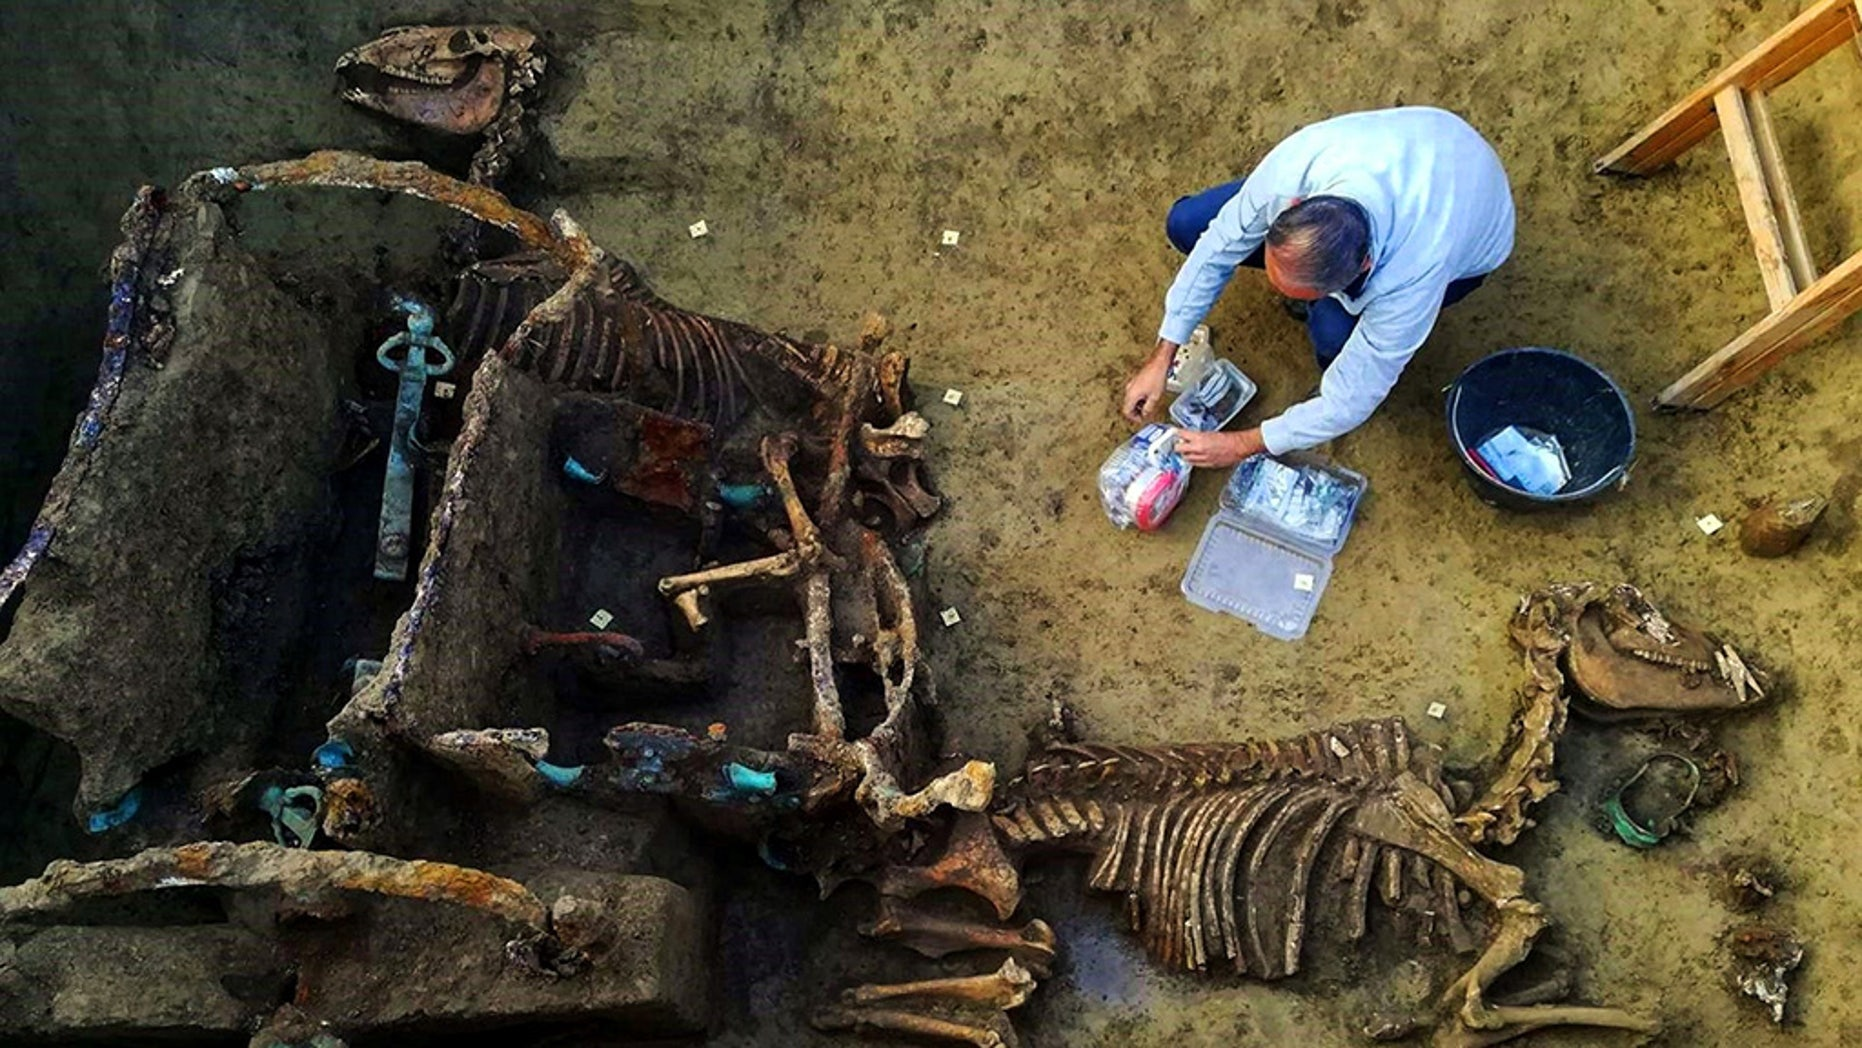 1,800-year-old Roman Chariot with horses found buried in Croatia